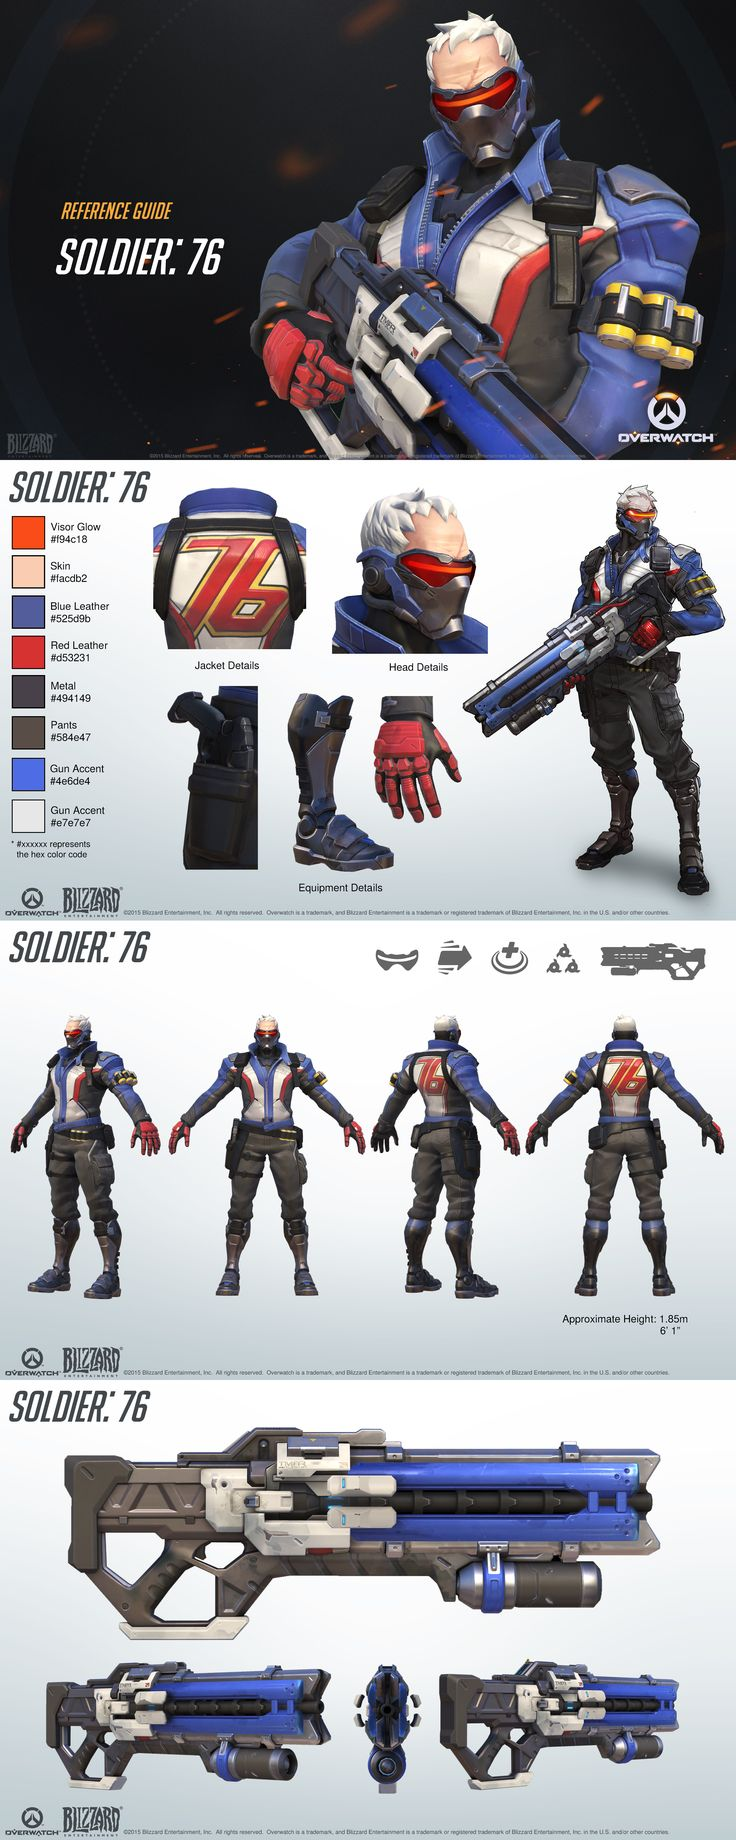 Soldier: 76 Reference Guide